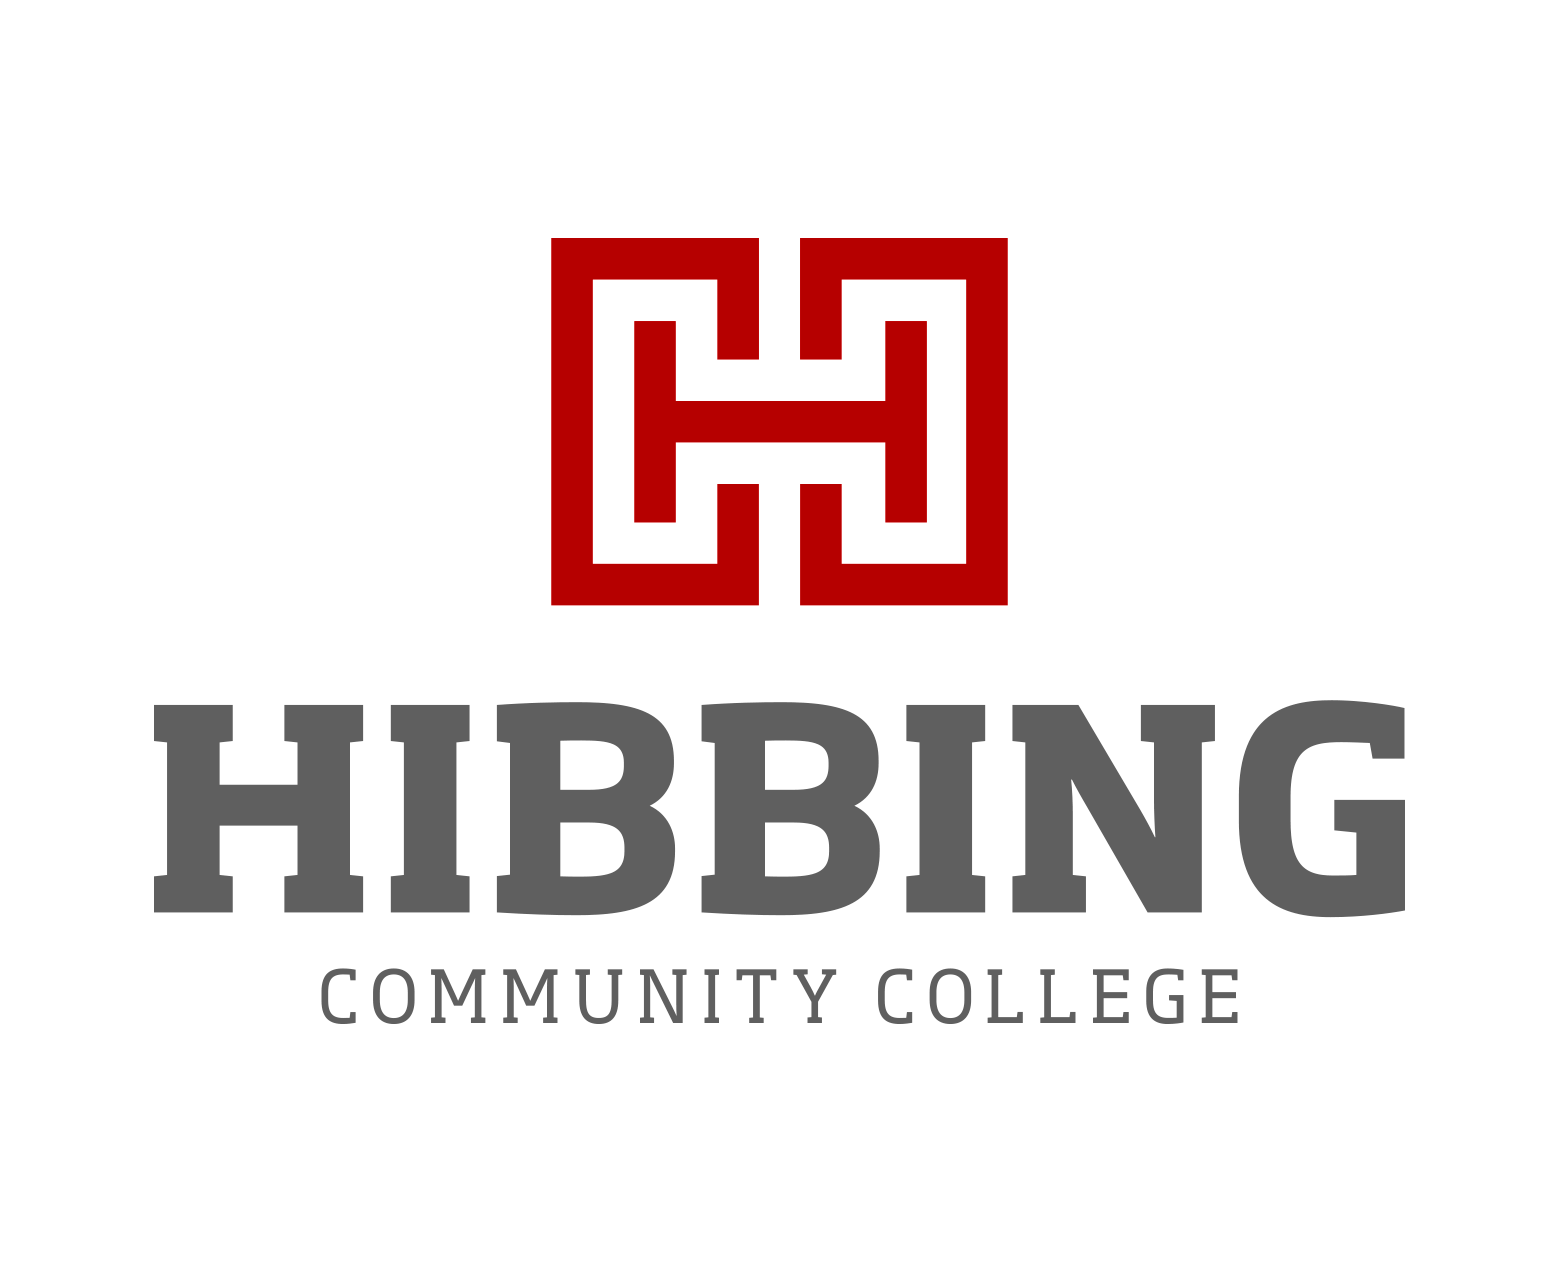 Hibbing Community College logo